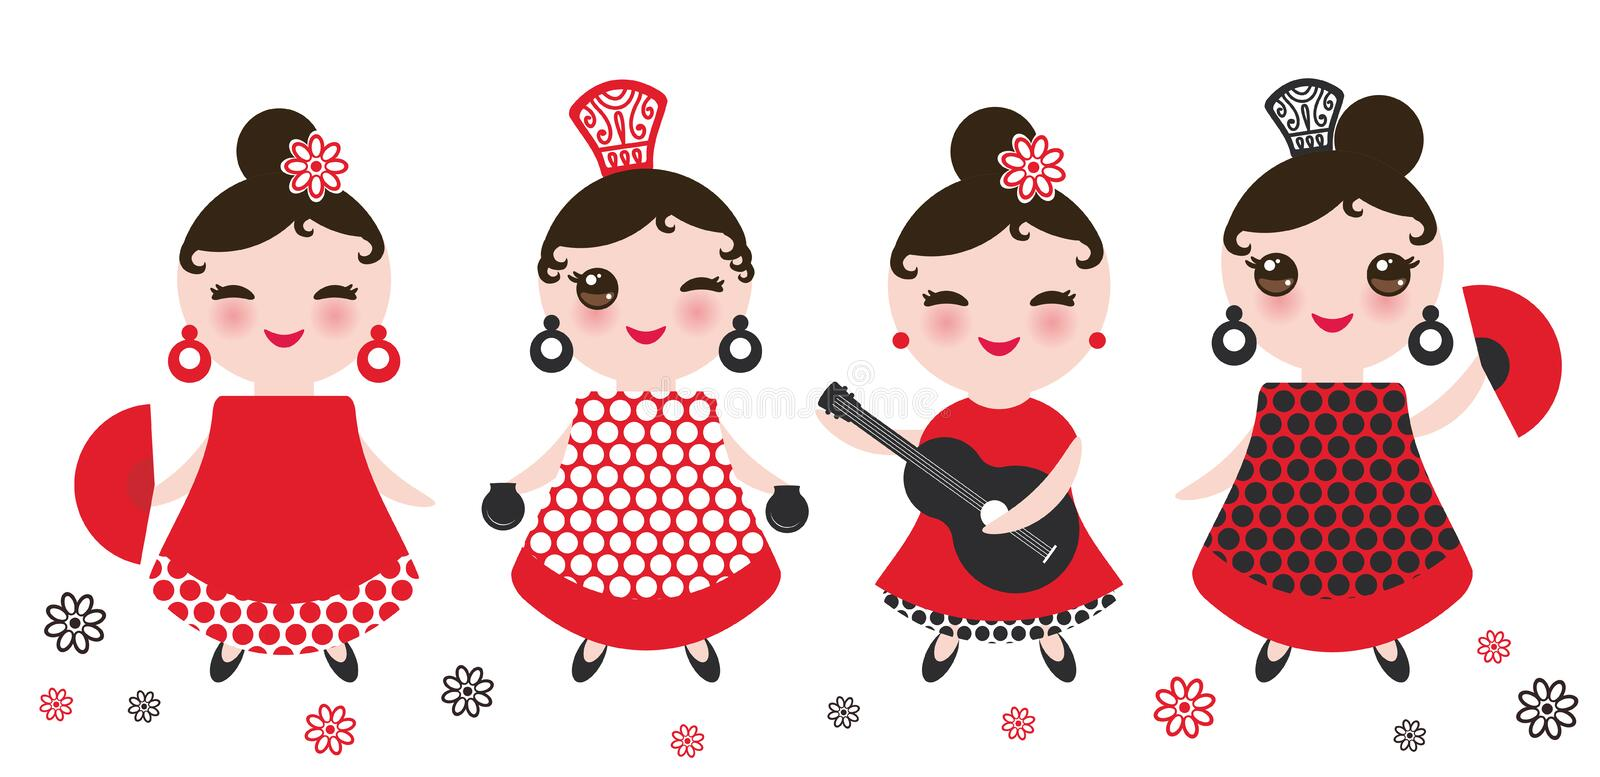 Spanish Woman flamenco dancer. Kawaii cute face with pink cheeks and winking eyes. Gipsy girl, red black white dress, polka dot fa stock illustration